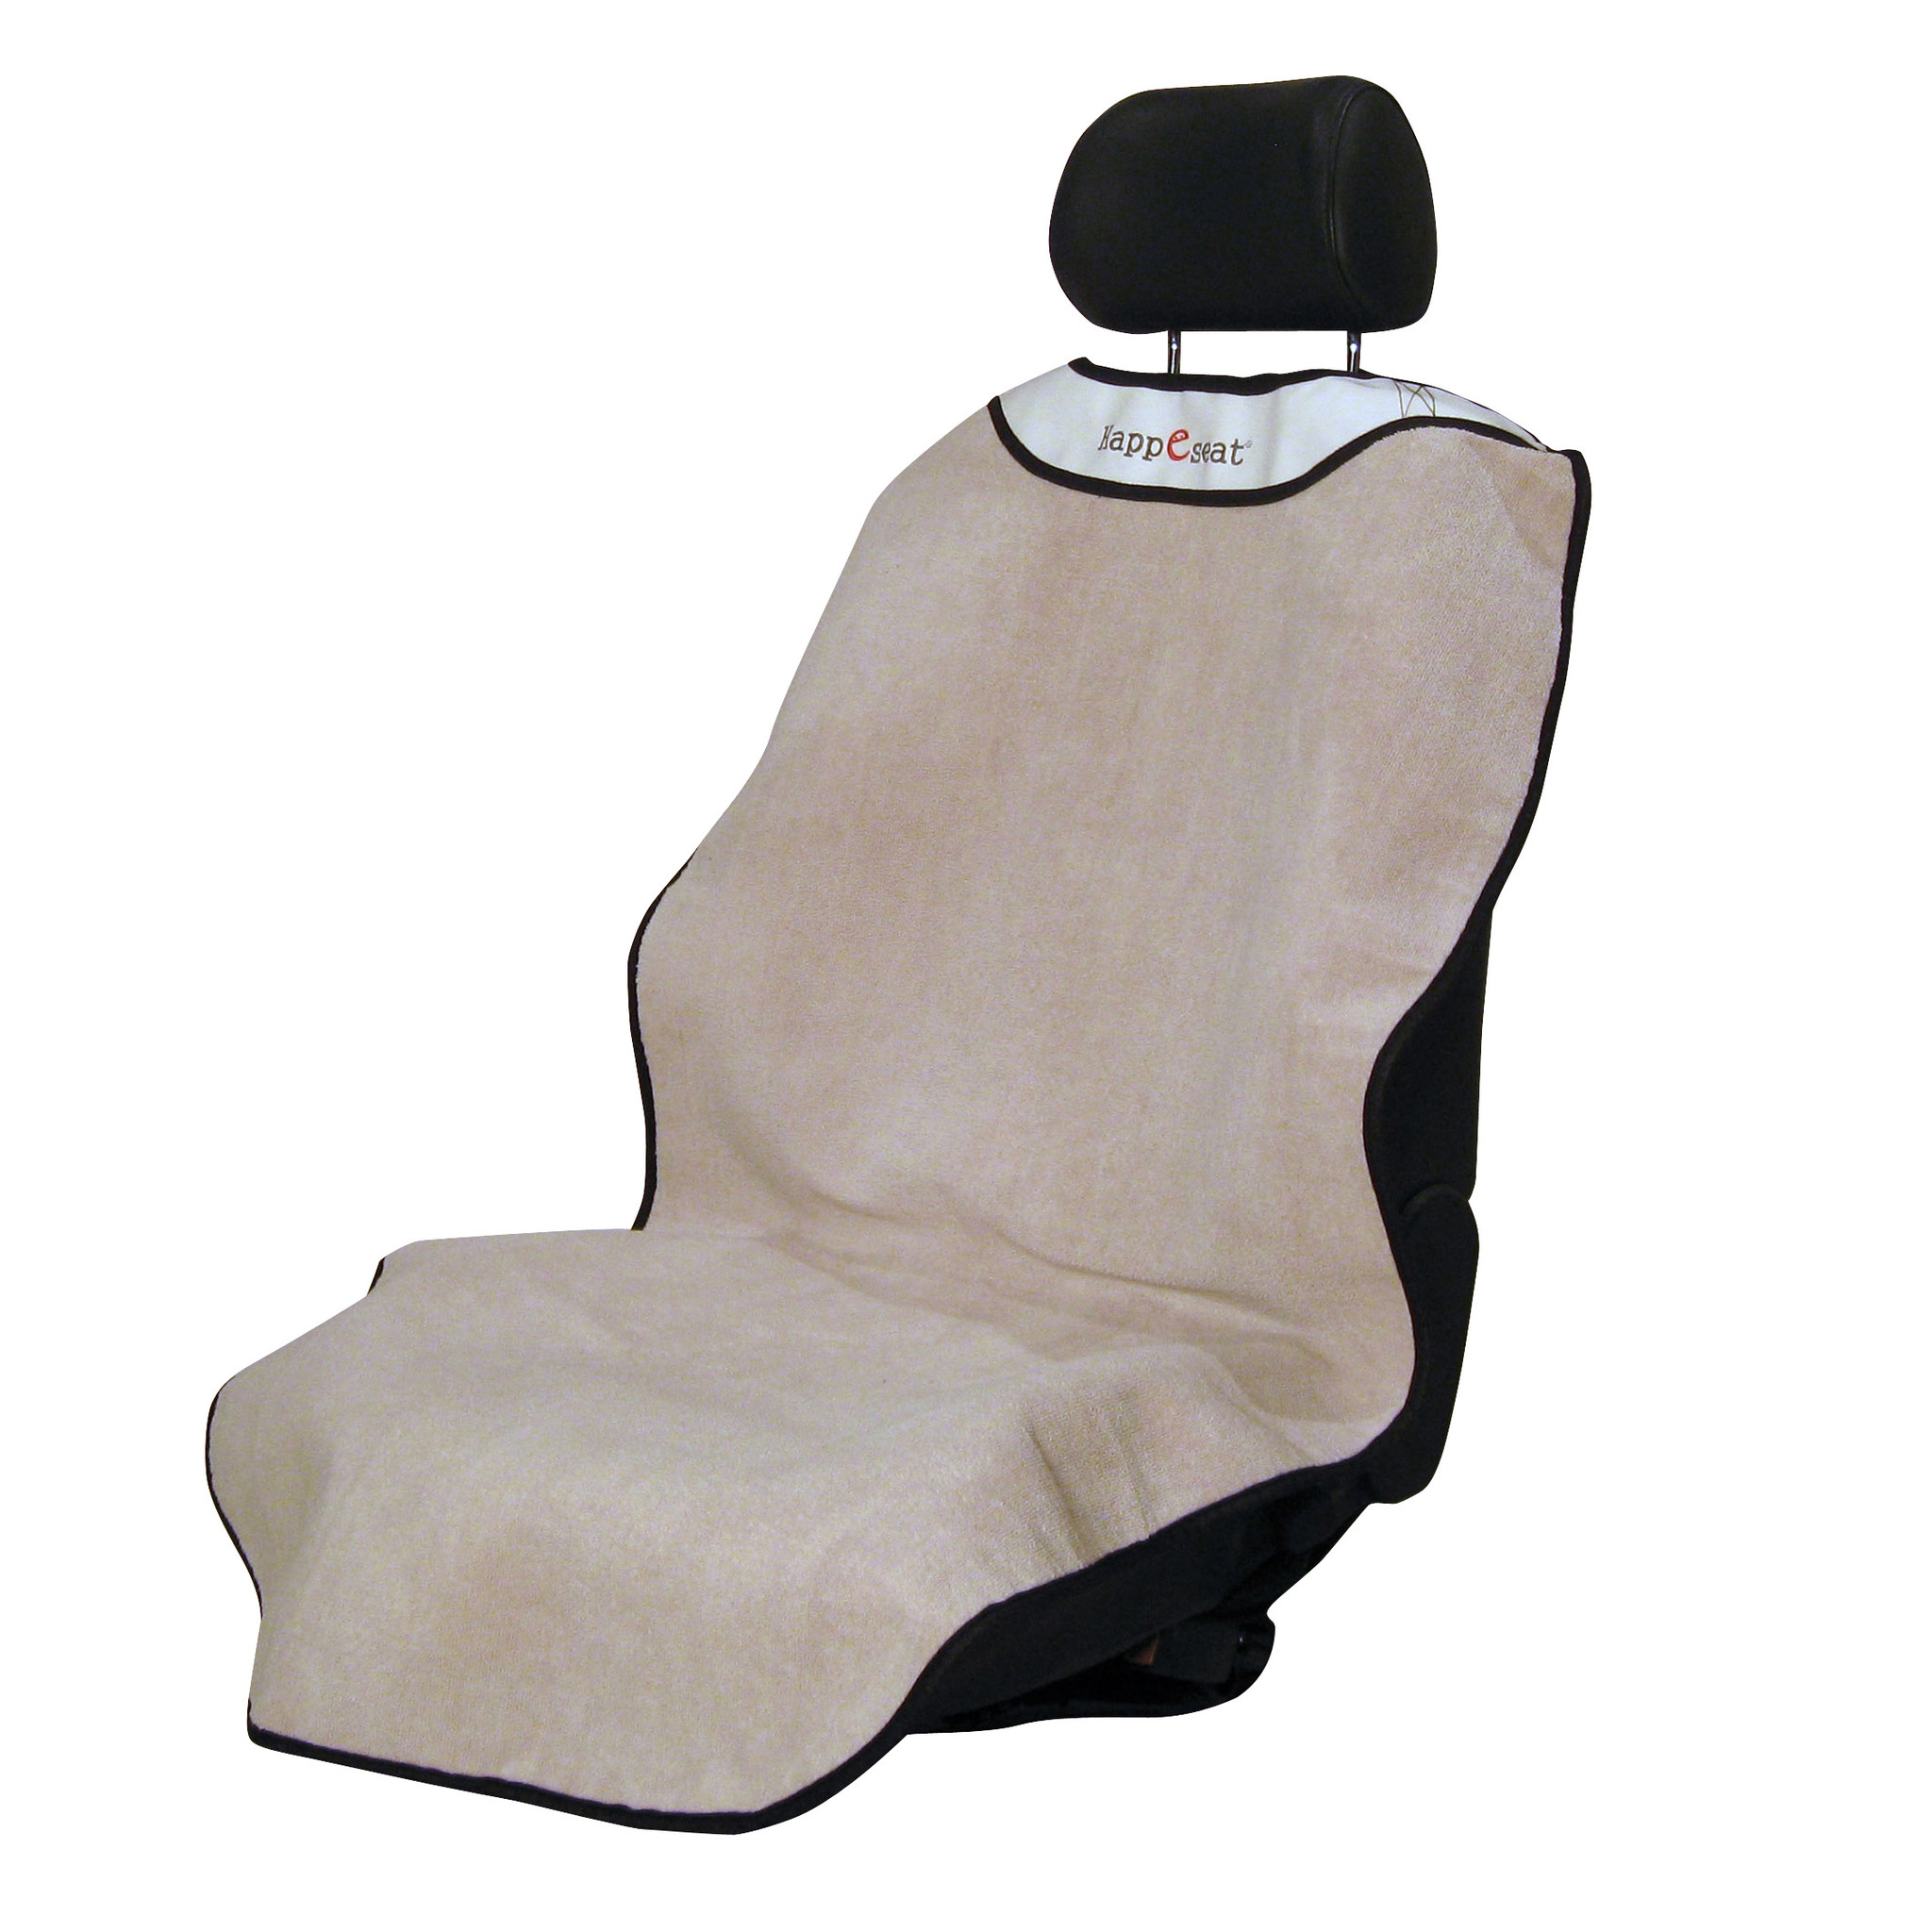 Happeseat Portable Moisture Wicking Athletic Car Seat